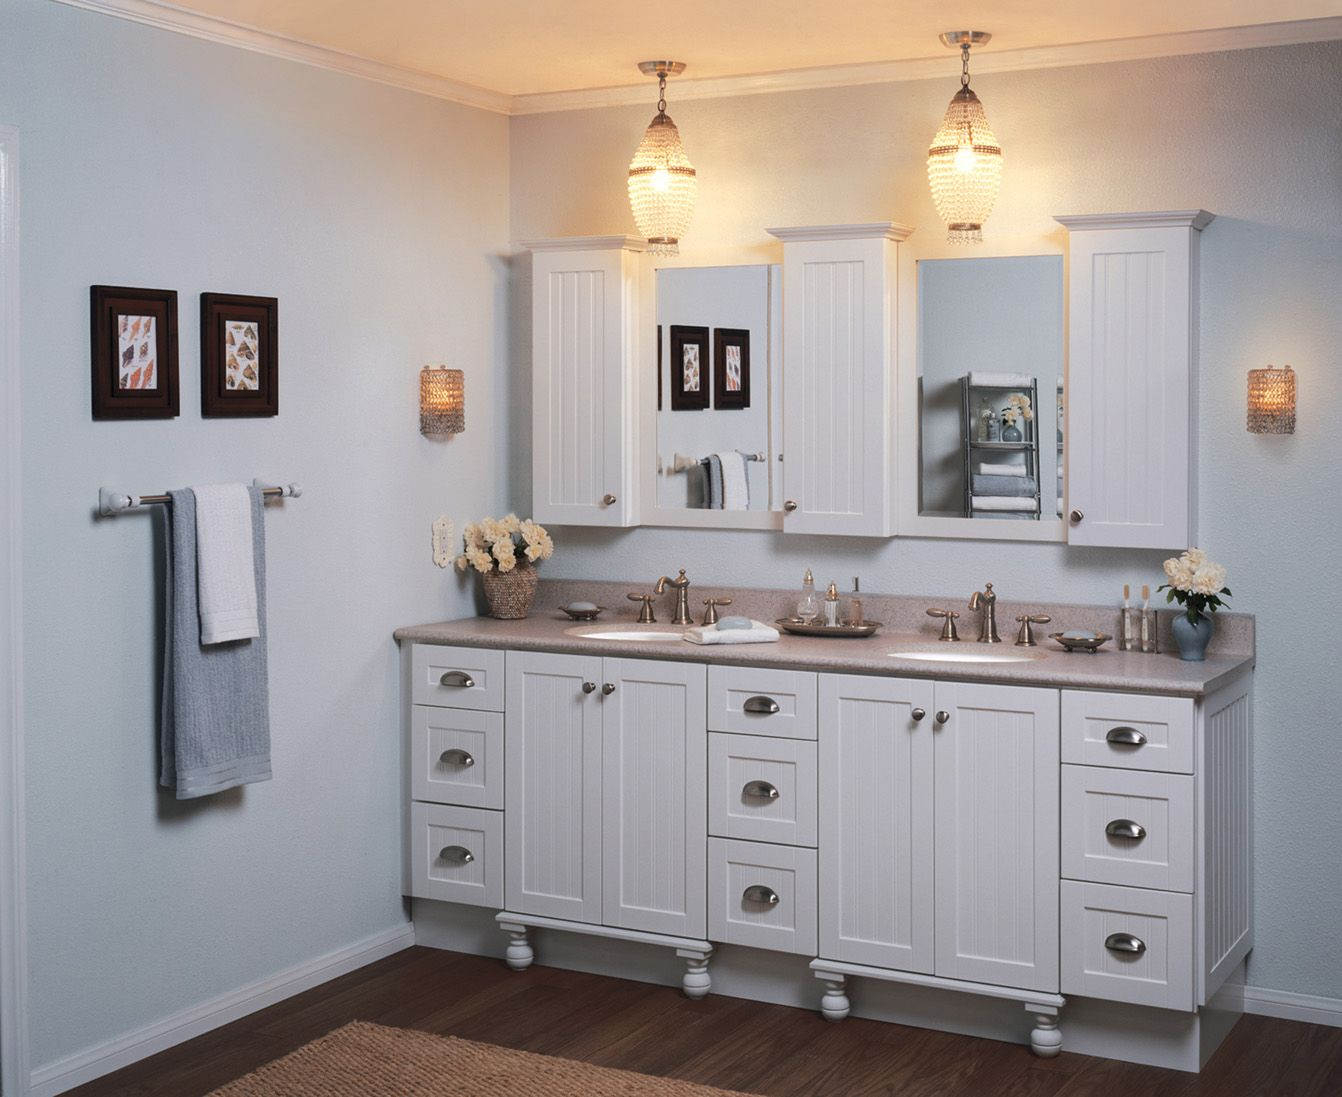 Nice bathroom cabinet ideas on bathroom with medicine cabinet is recessed into the wall these versatile